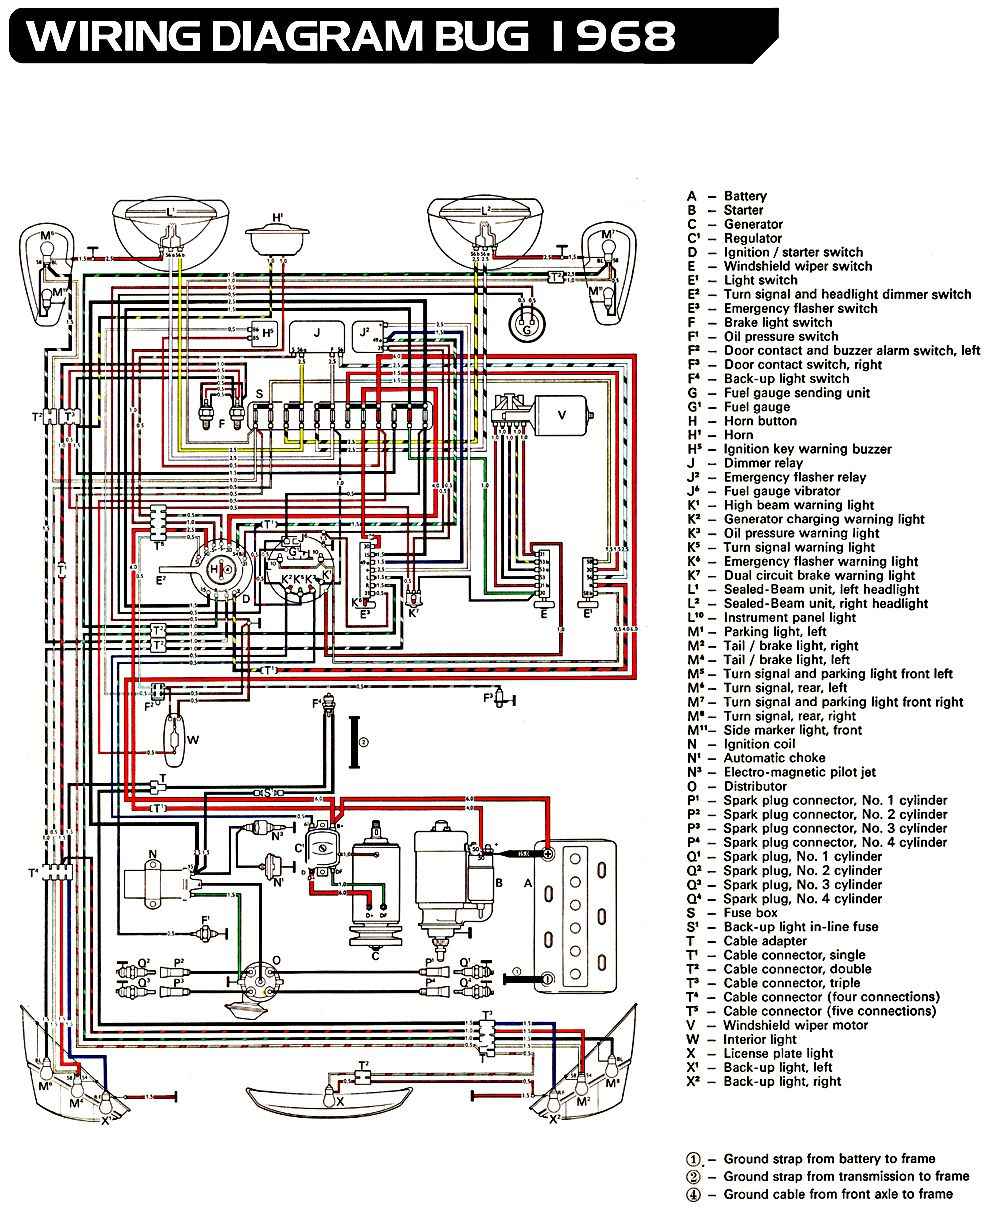 3a1908112d3826270ed5e3be362292bf vw bug ignition wiring diagram 73 vw wiring diagram free wiring harness for 1967 vw beetle at gsmx.co